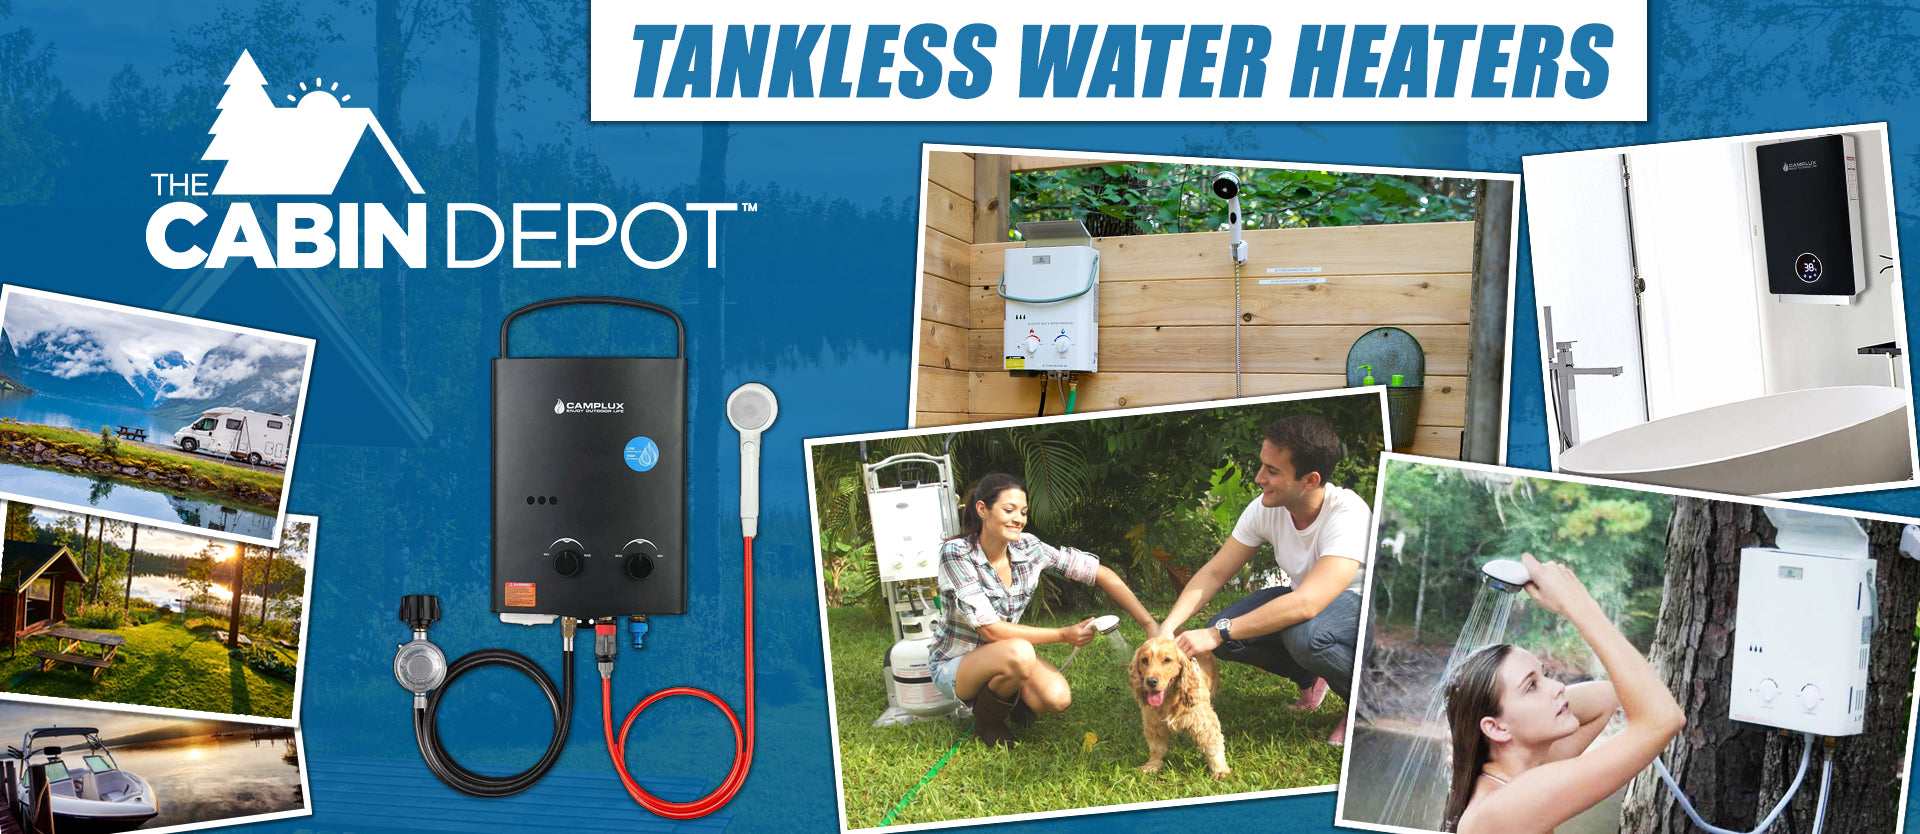 Tankless Water Heaters The Cabin Depot ™ Canada